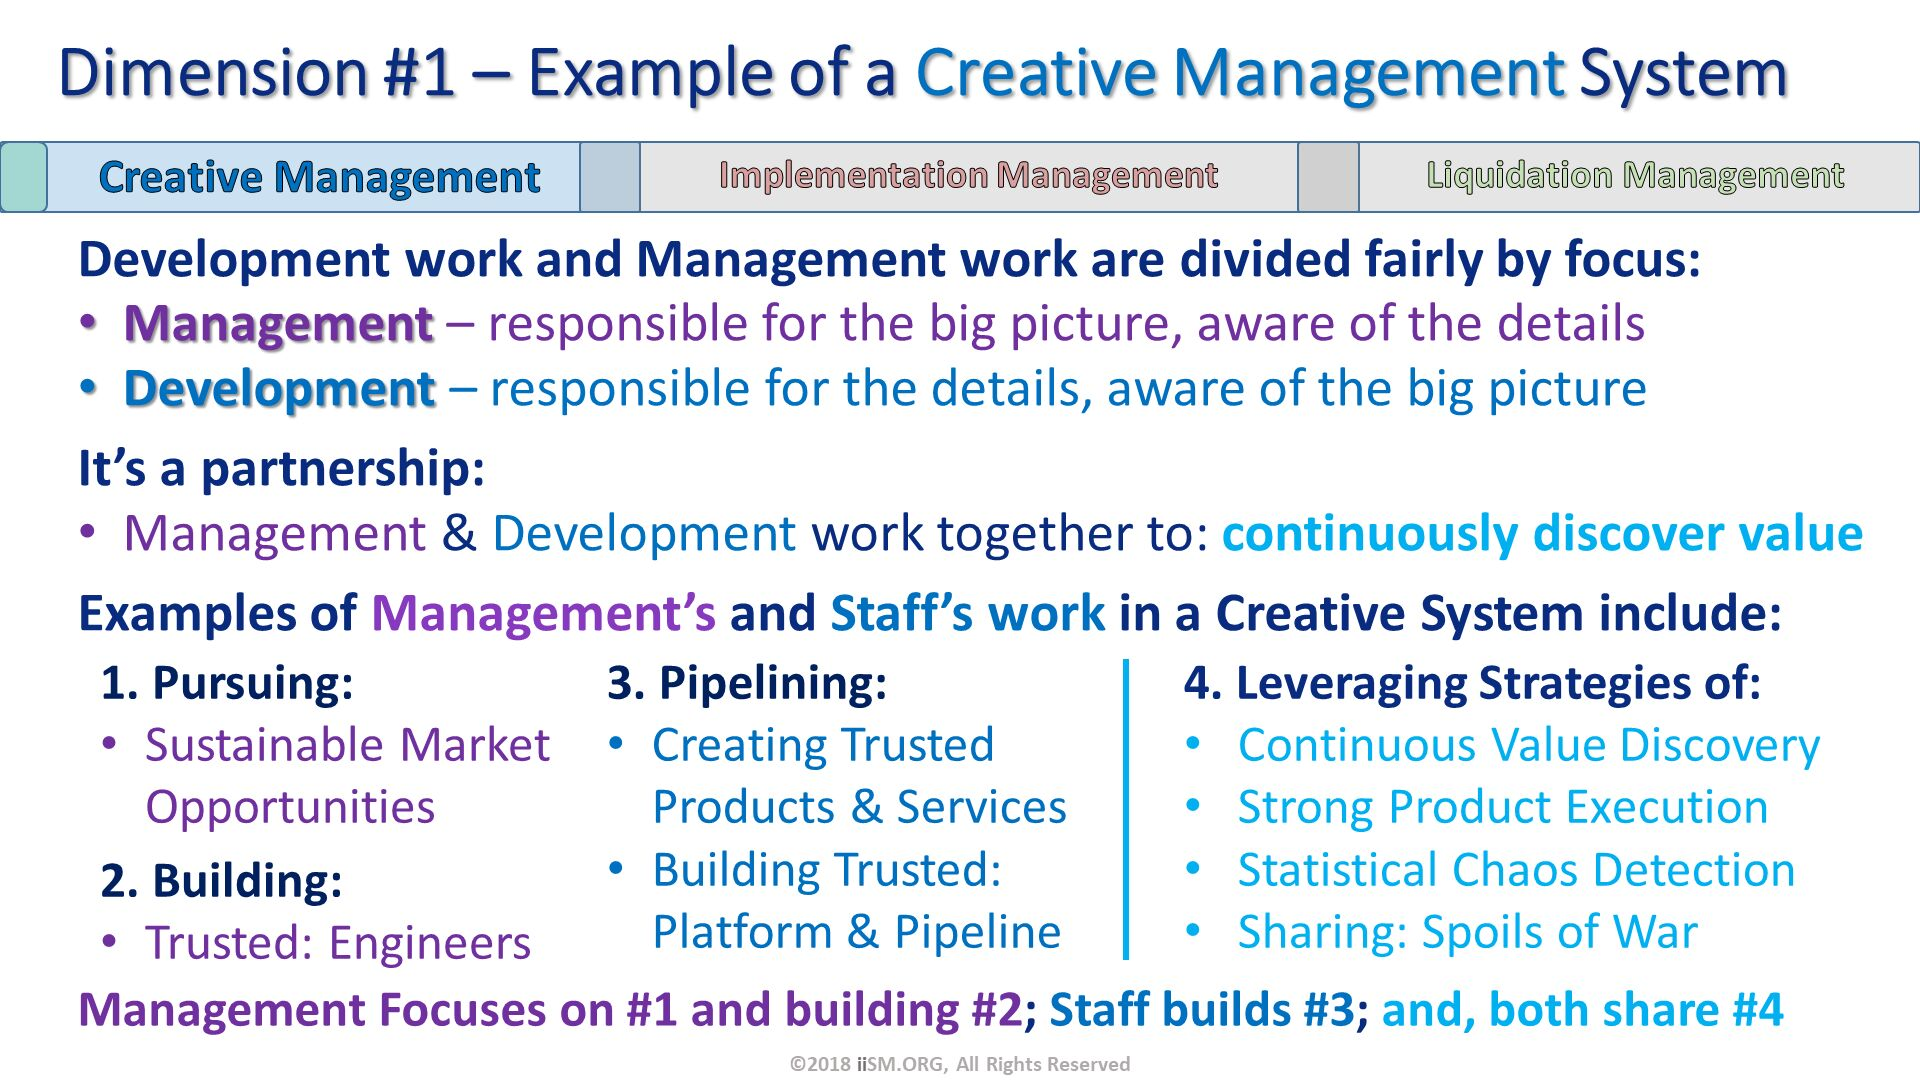 Development work and Management work are divided fairly by focus: Management – responsible for the big picture, aware of the details Development – responsible for the details, aware of the big picture It's a partnership: Management & Development work together to: continuously discover value Examples of Management's and Staff's work in a Creative System include:. Dimension #1 – Example of a Creative Management System. 1. Pursuing: Sustainable Market Opportunities. 4. Leveraging Strategies of: Continuous Value Discovery Strong Product Execution Statistical Chaos Detection Sharing: Spoils of War. 2. Building: Trusted: Engineers . 3. Pipelining: Creating Trusted Products & Services Building Trusted: Platform & Pipeline. Management Focuses on #1 and building #2; Staff builds #3; and, both share #4. ©2018 iiSM.ORG, All Rights Reserved.